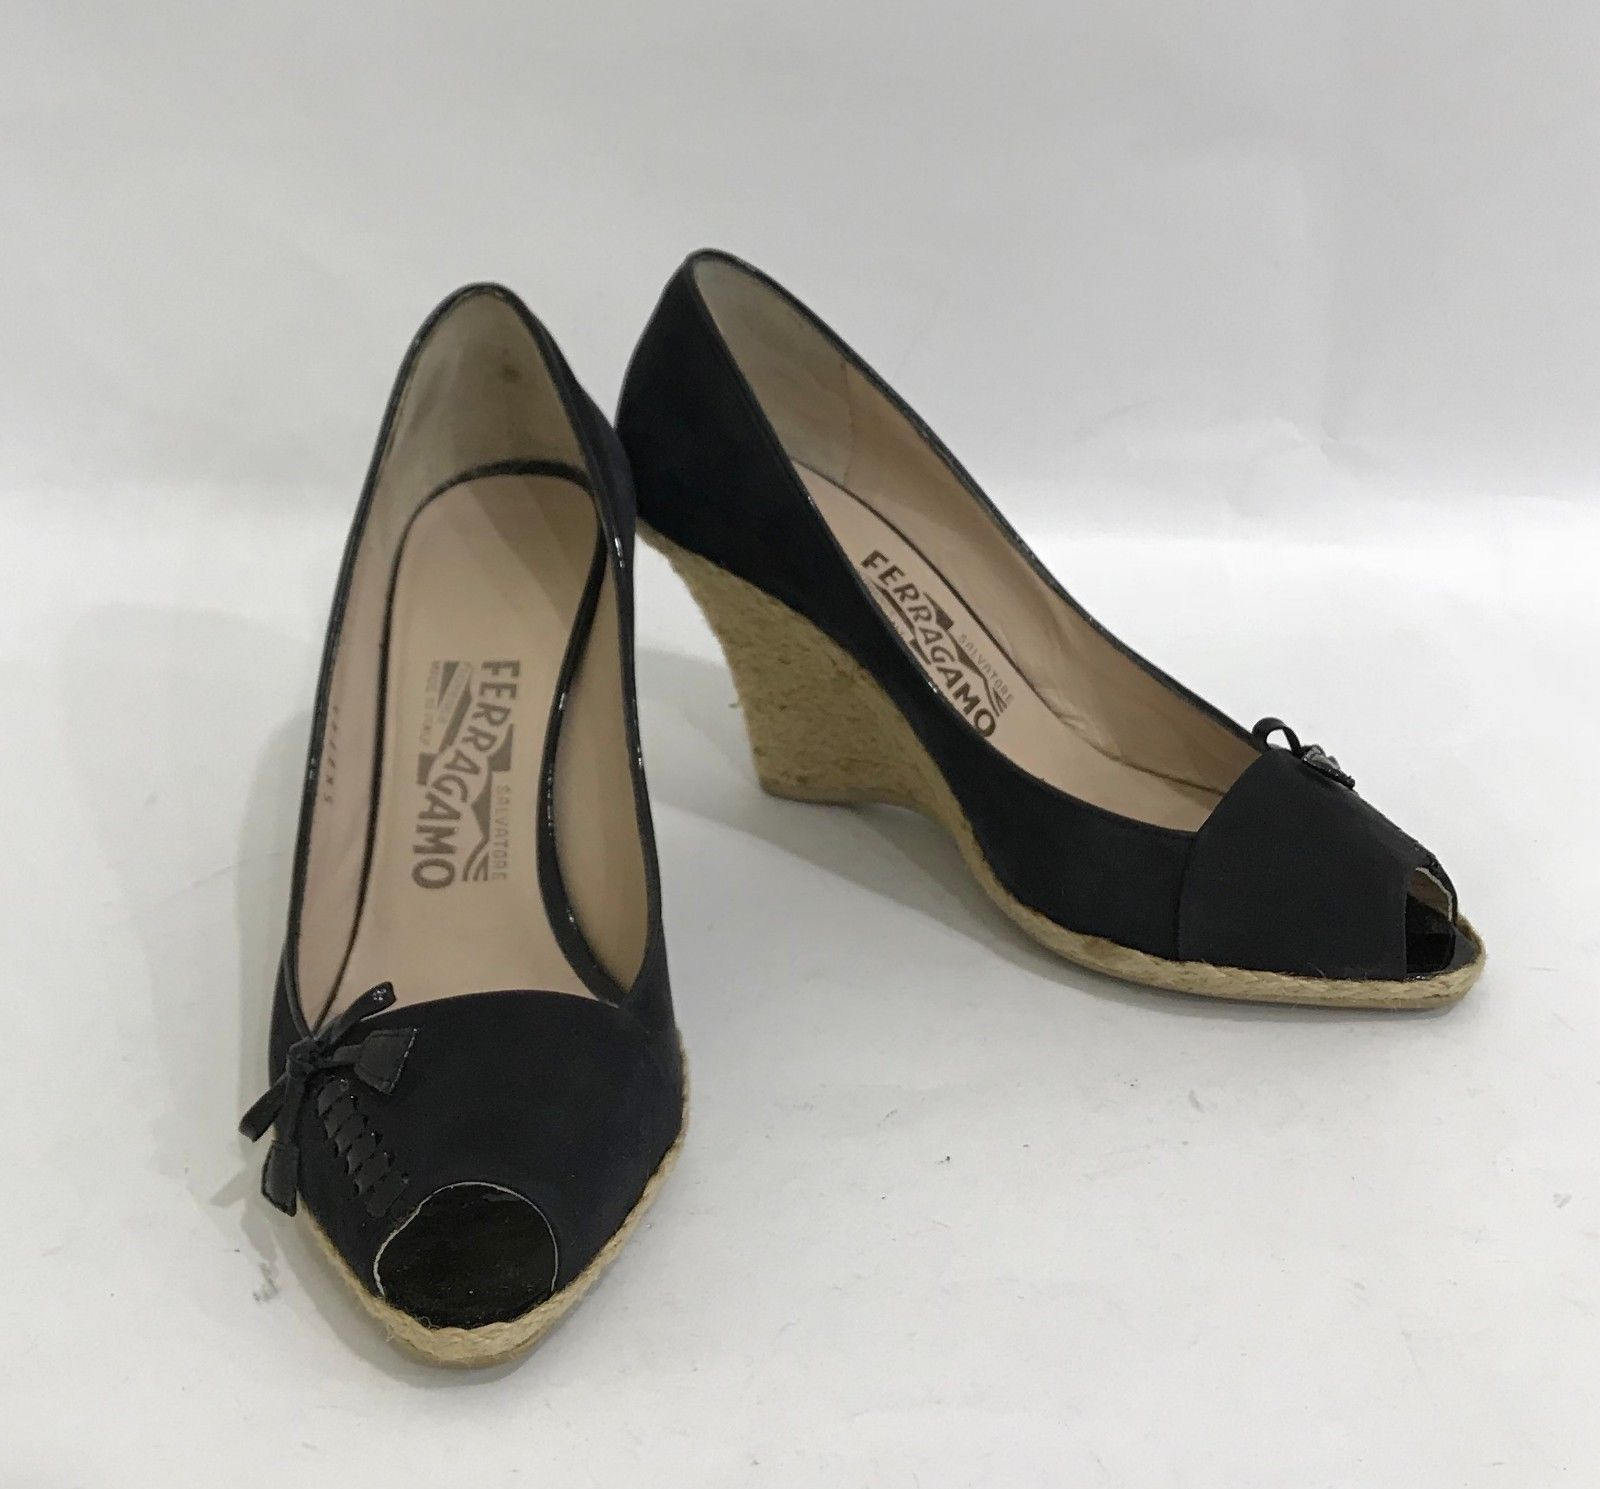 ea7fa8d0632 S l1600. S l1600. Salvatore Ferragamo Black Suede High Wedge Heel Shoes  Open Toe Pumps Size US 7